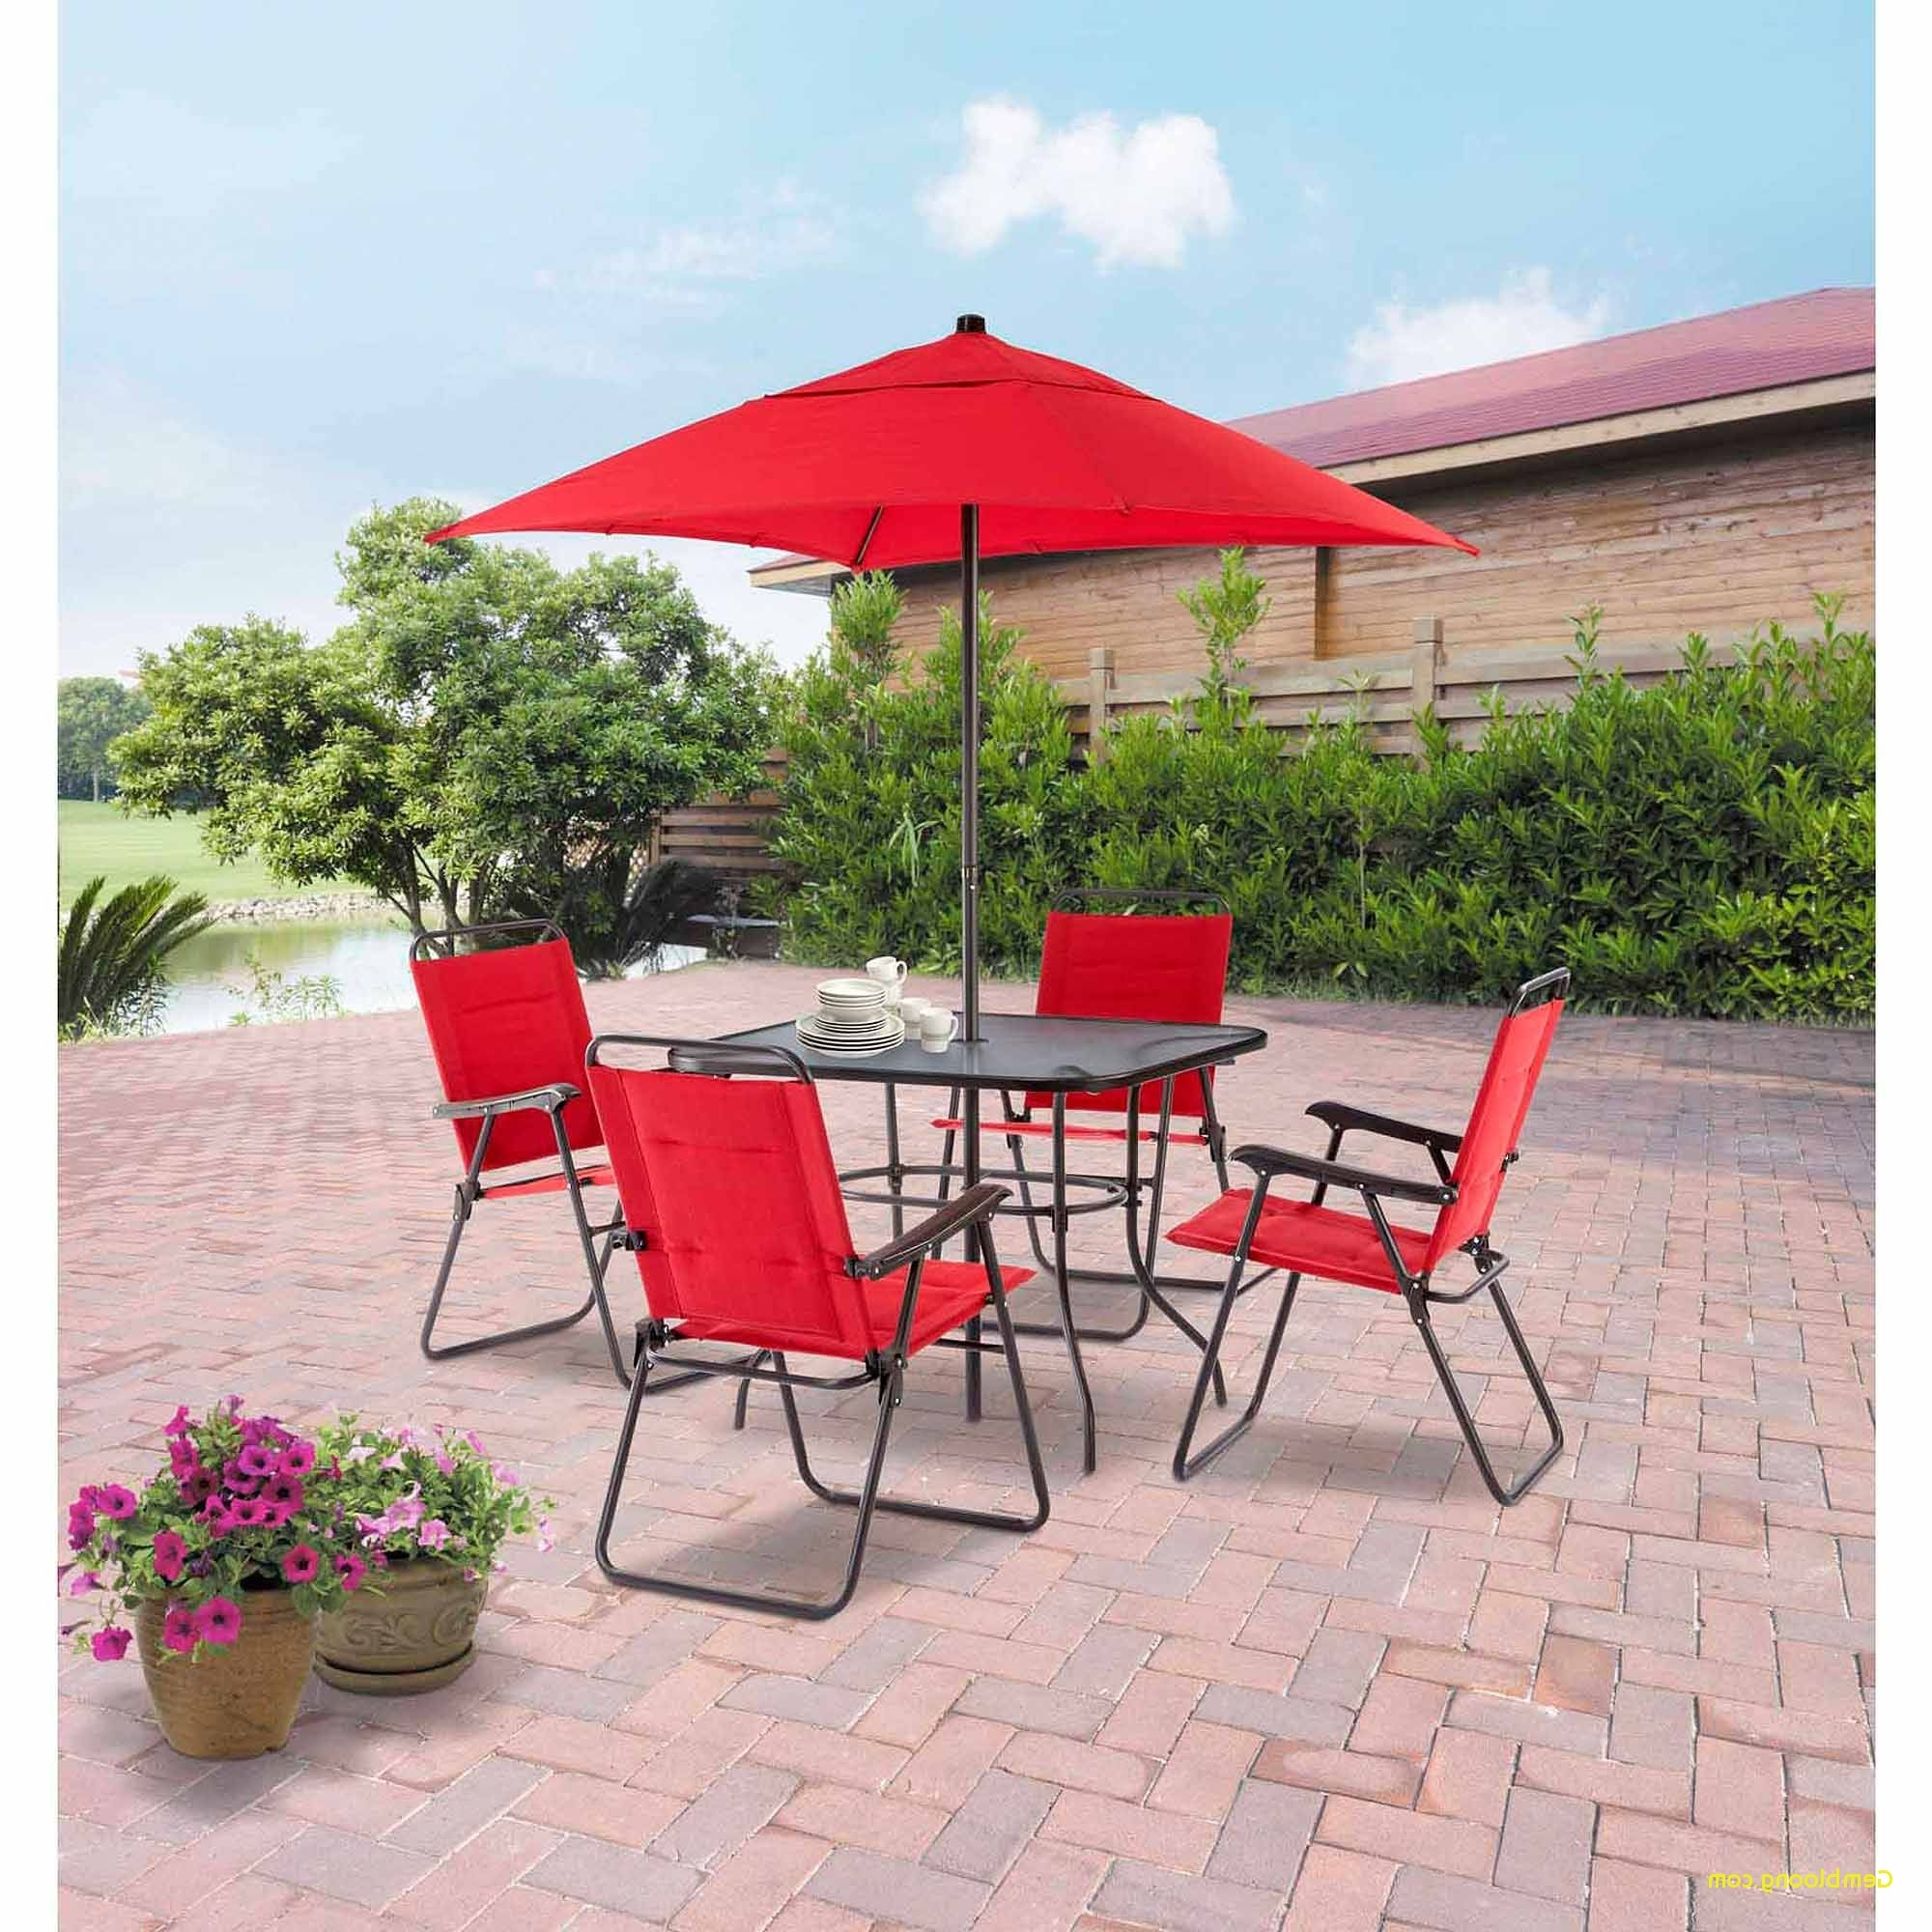 Patio Conversation Sets At Walmart For Latest New Walmart Wicker Patio Furniture Sets (View 10 of 20)